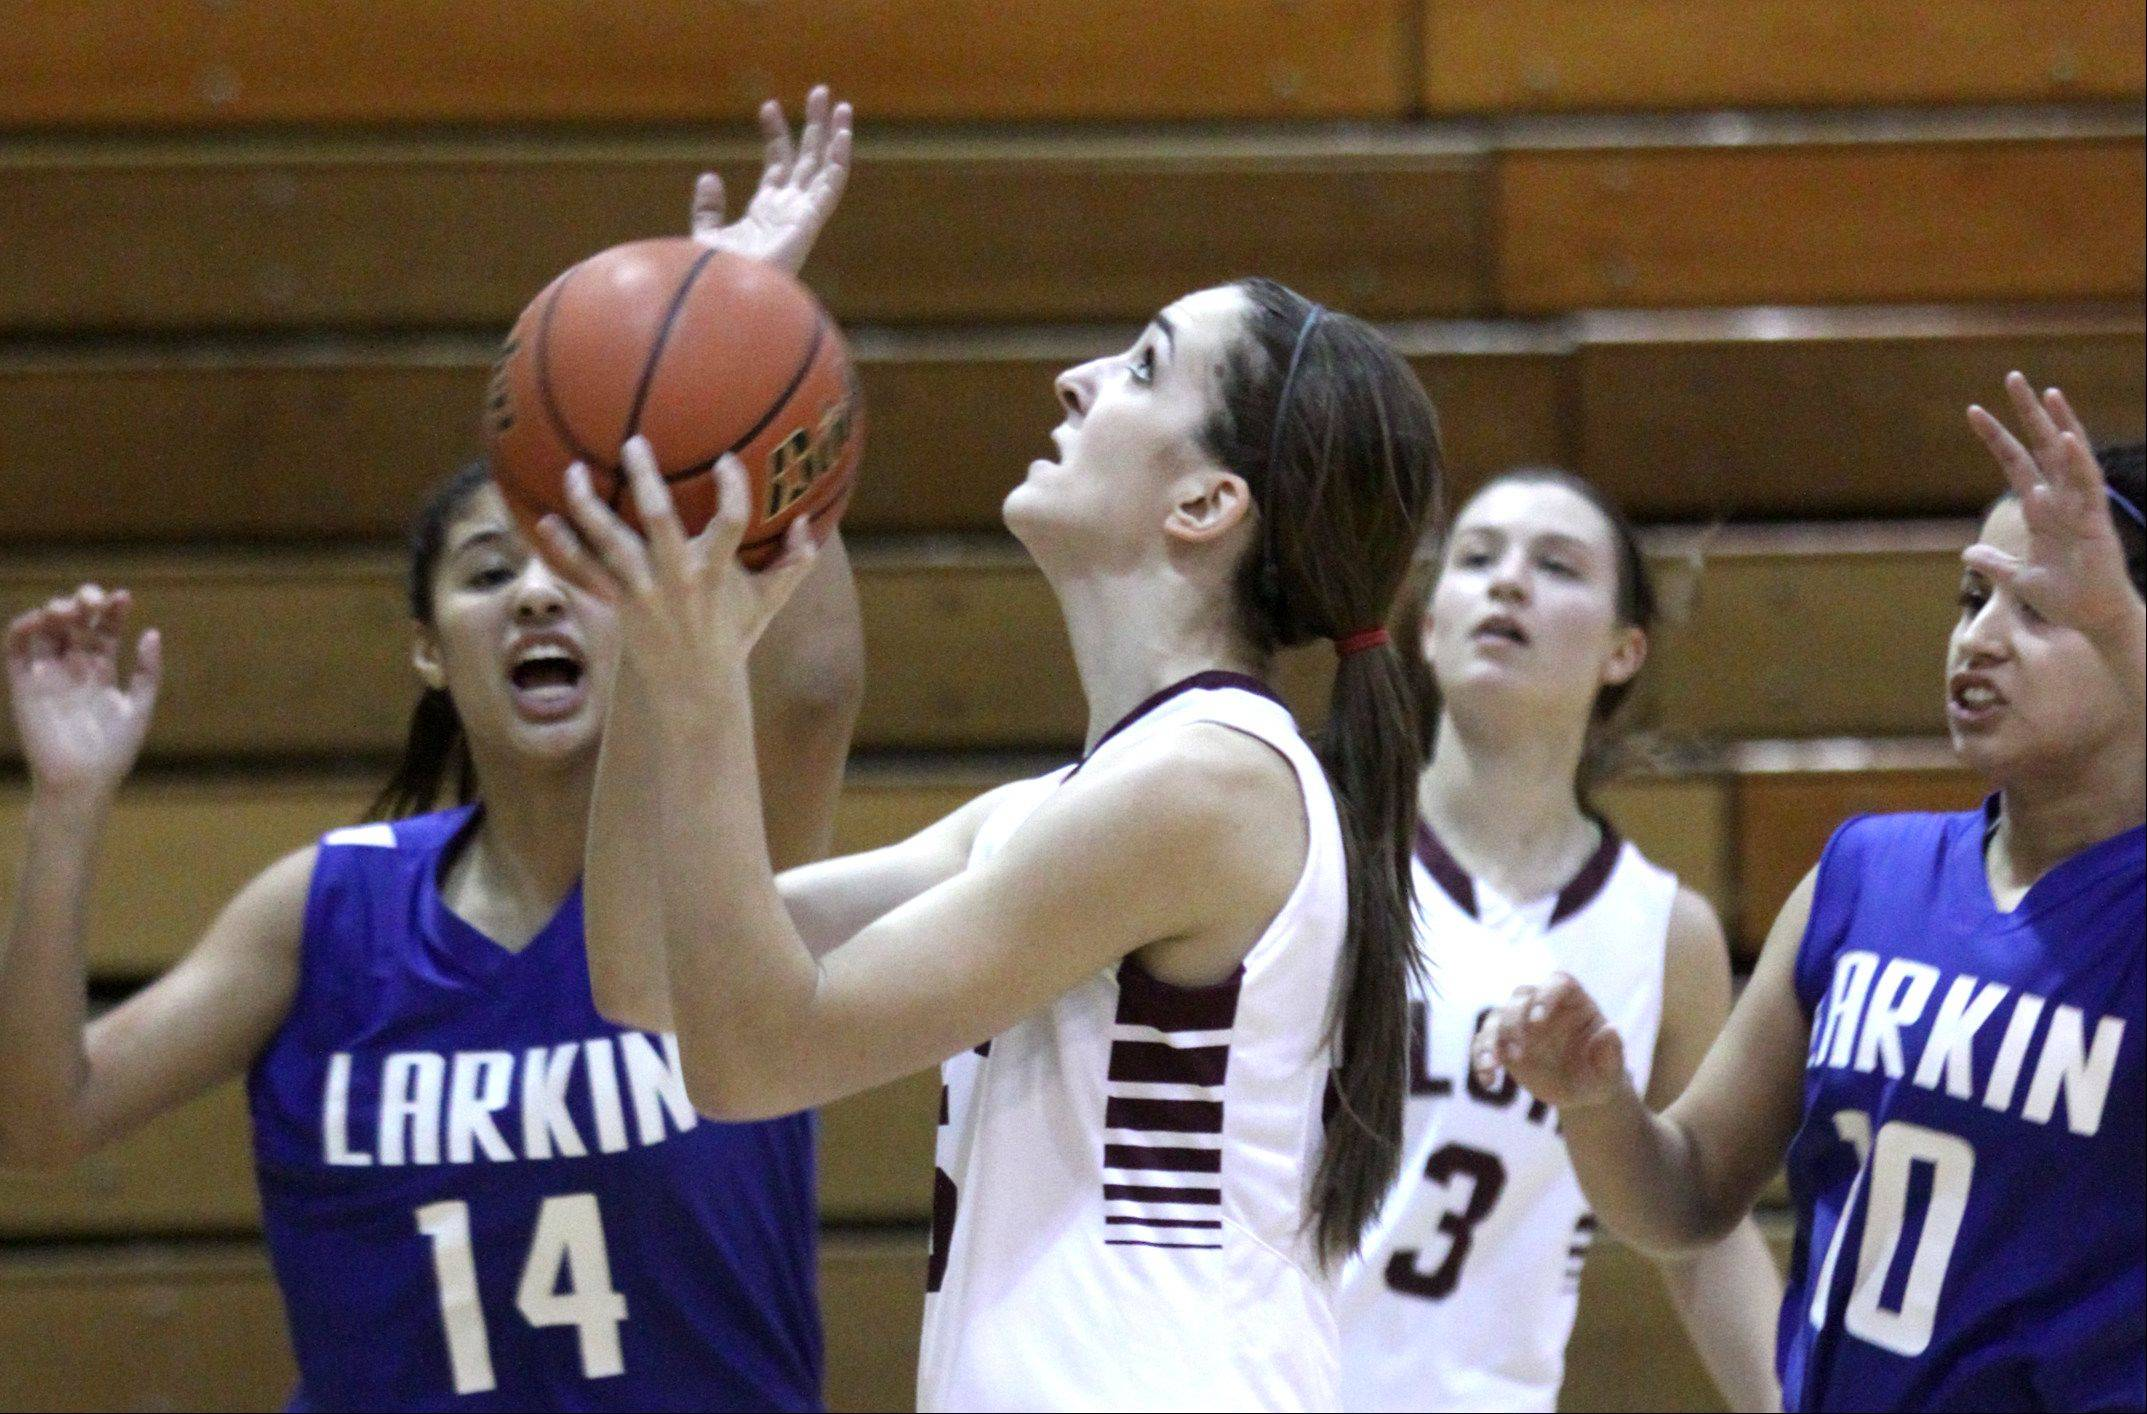 Elgin�s Tamara Milosevic, center, takes a shot against Larkin.